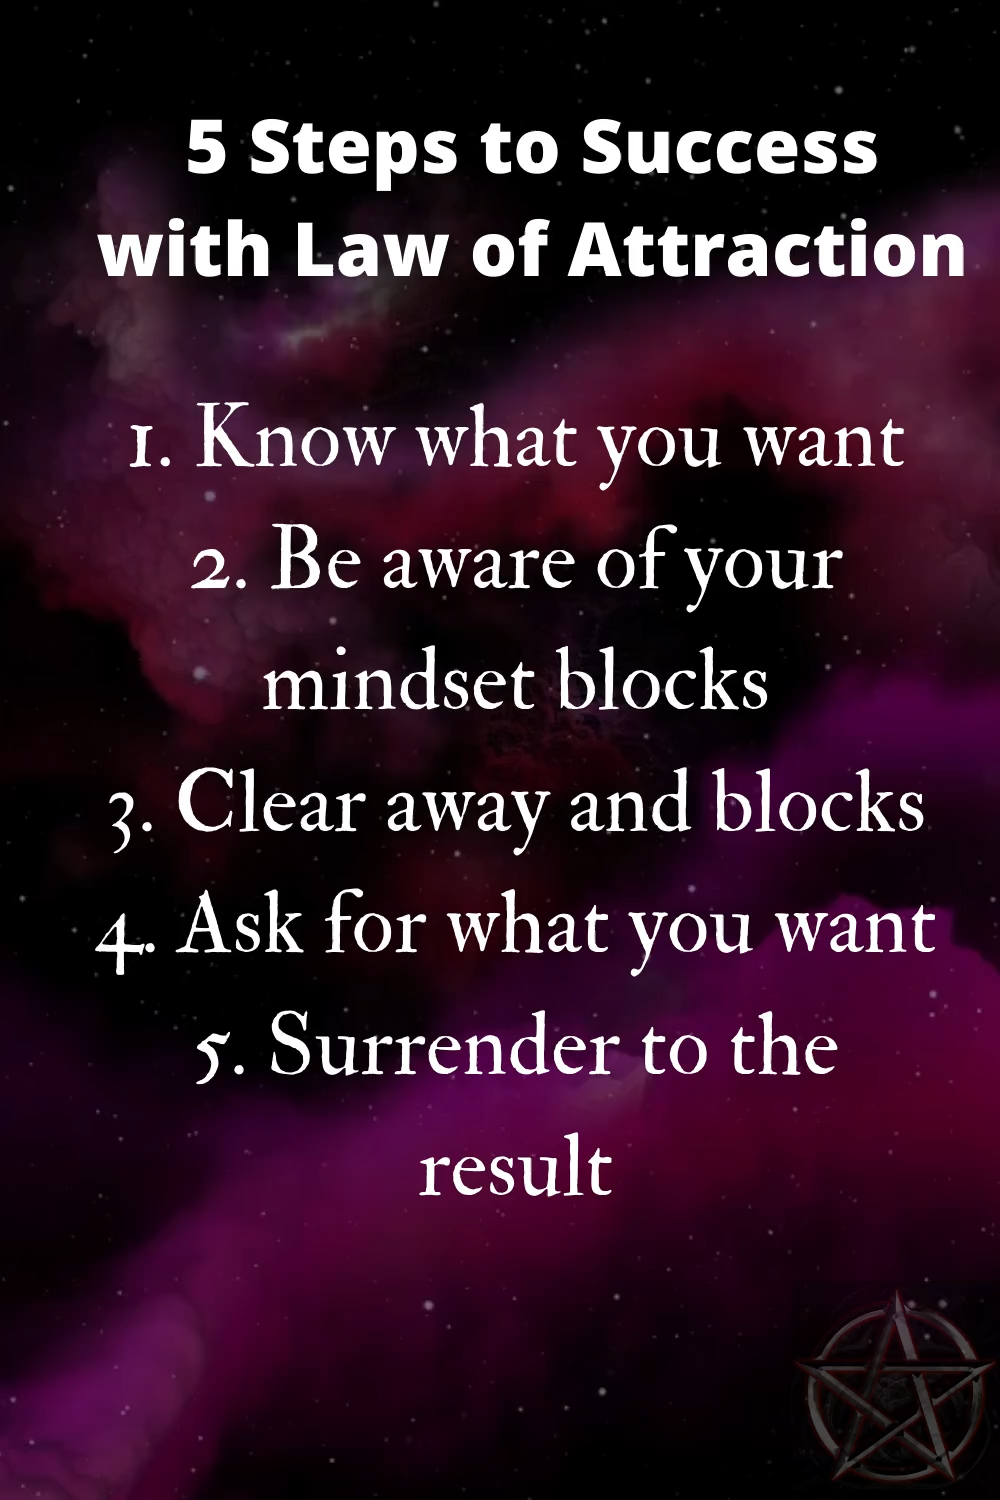 5 Step Law Of Attraction